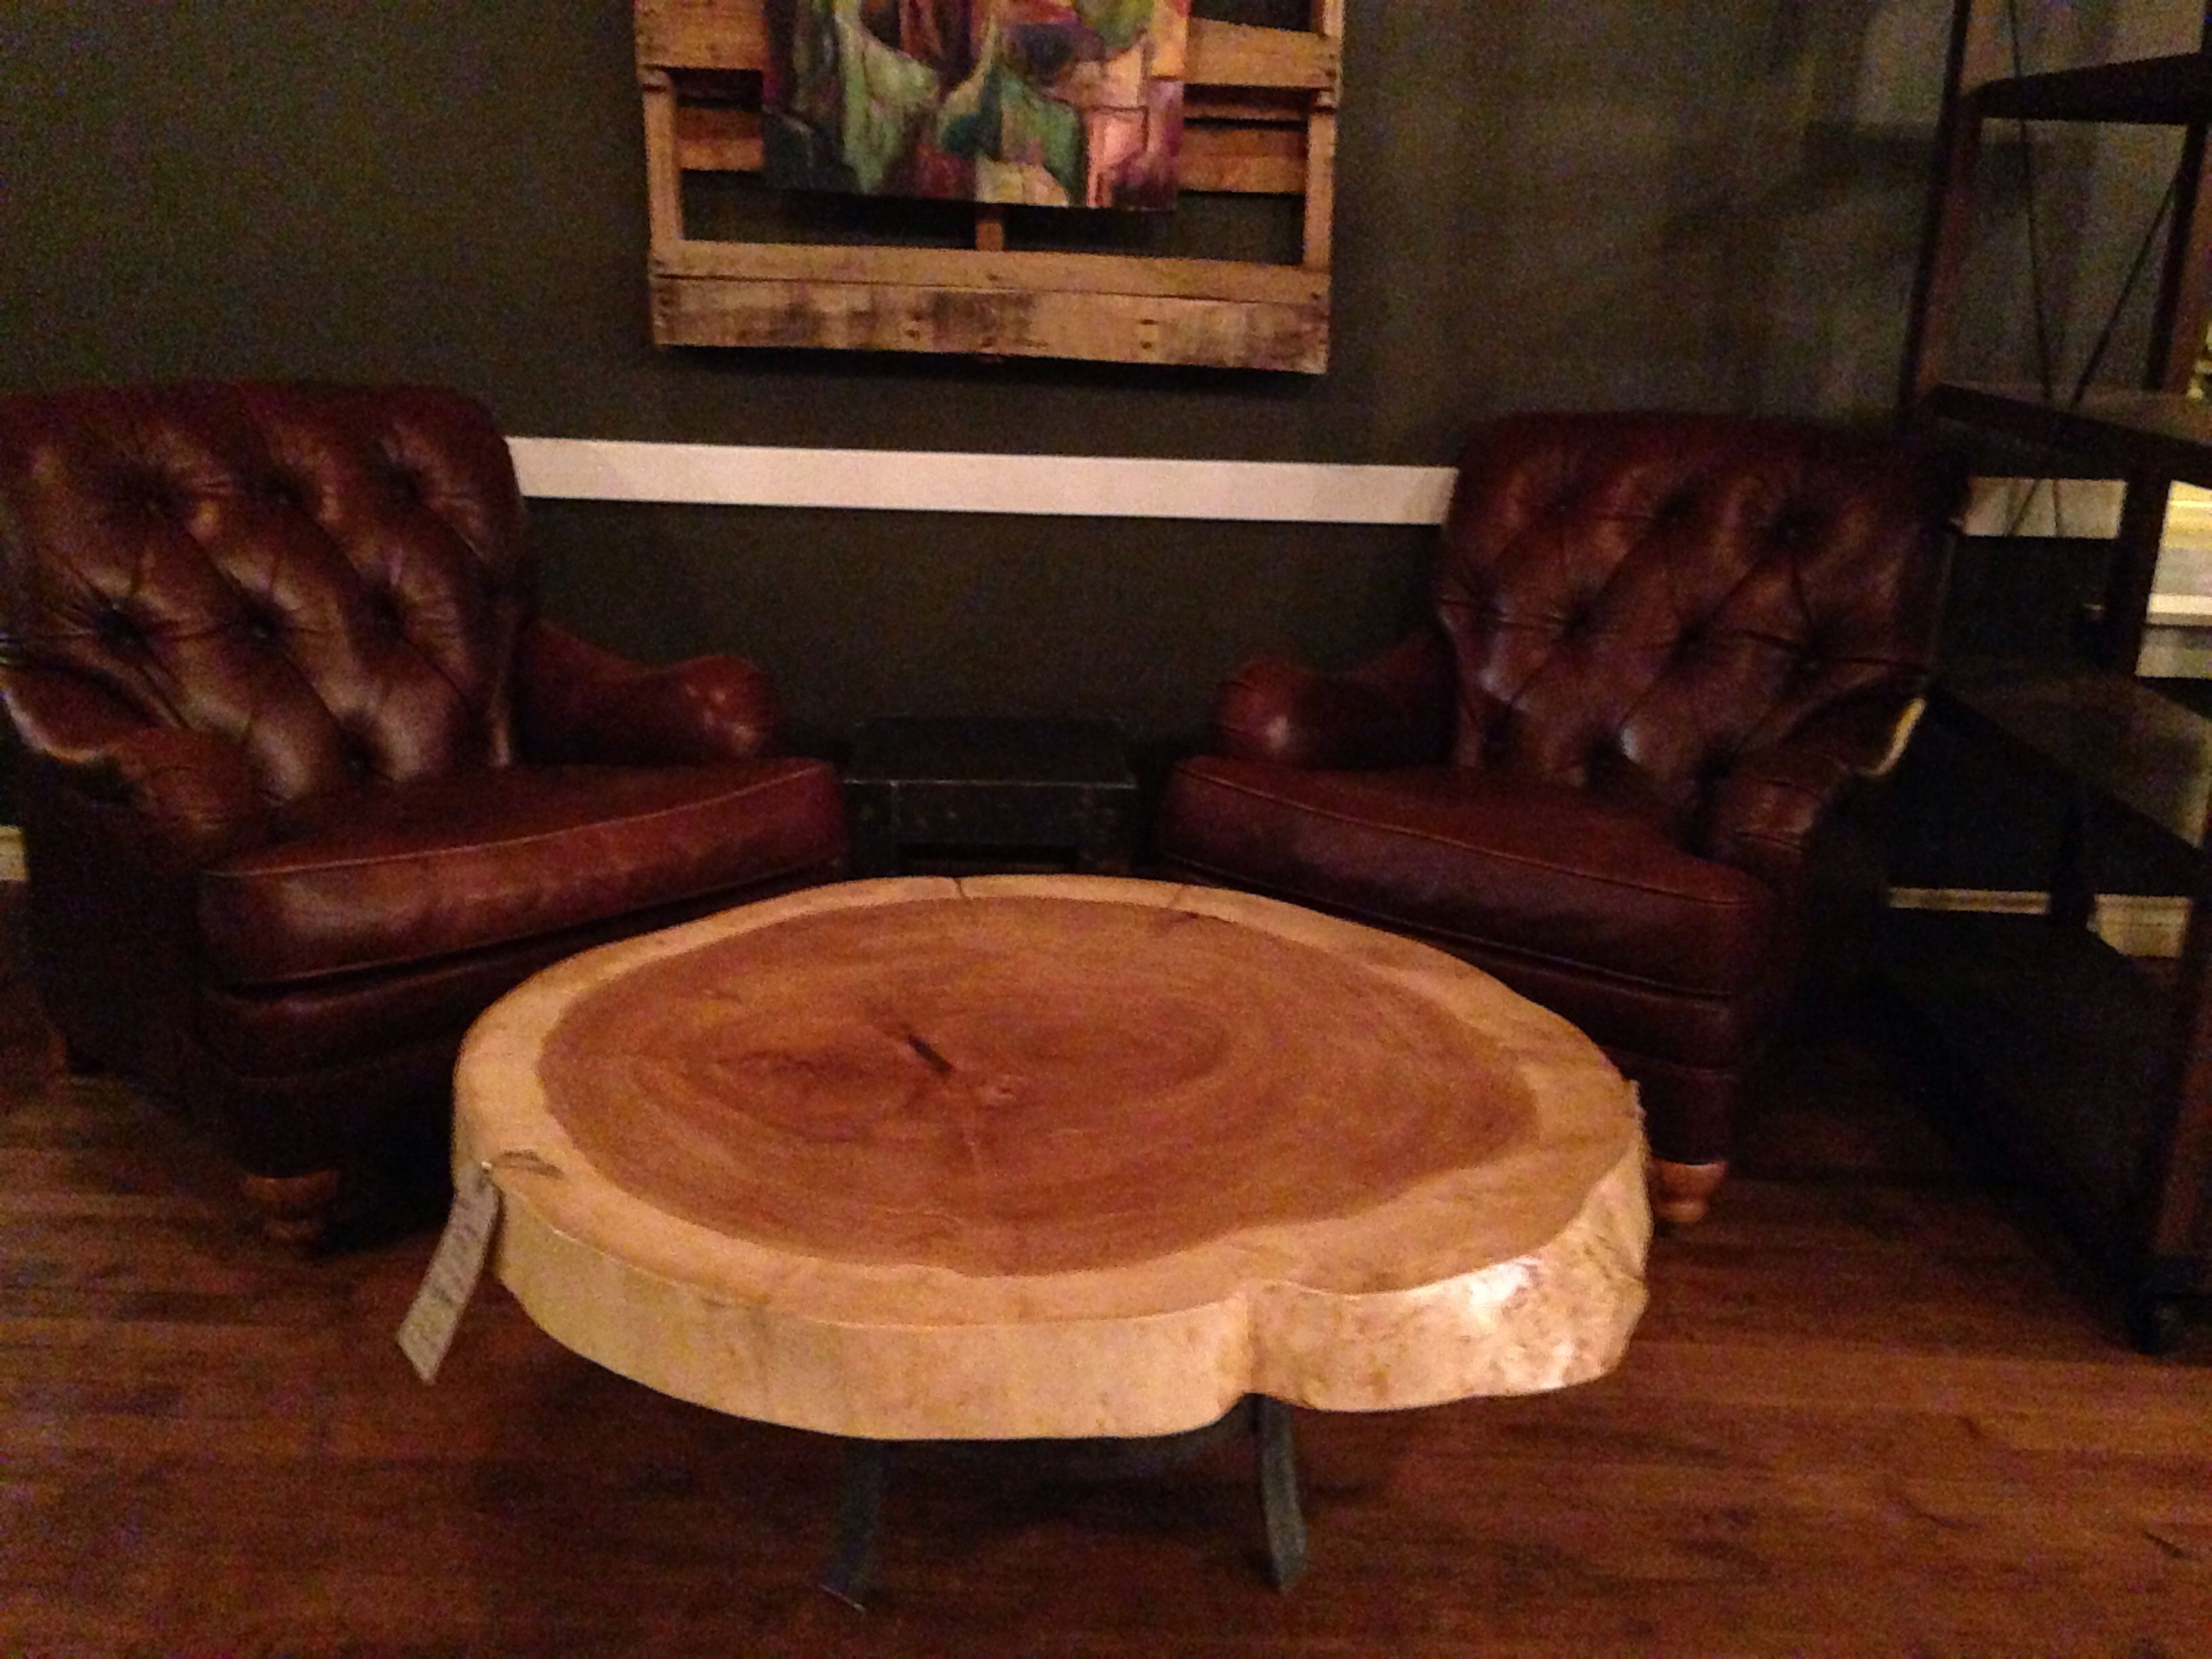 Living Room Side Tables For Sale 46inch Ash Coffee Table For Sale At Coffea On Phillips